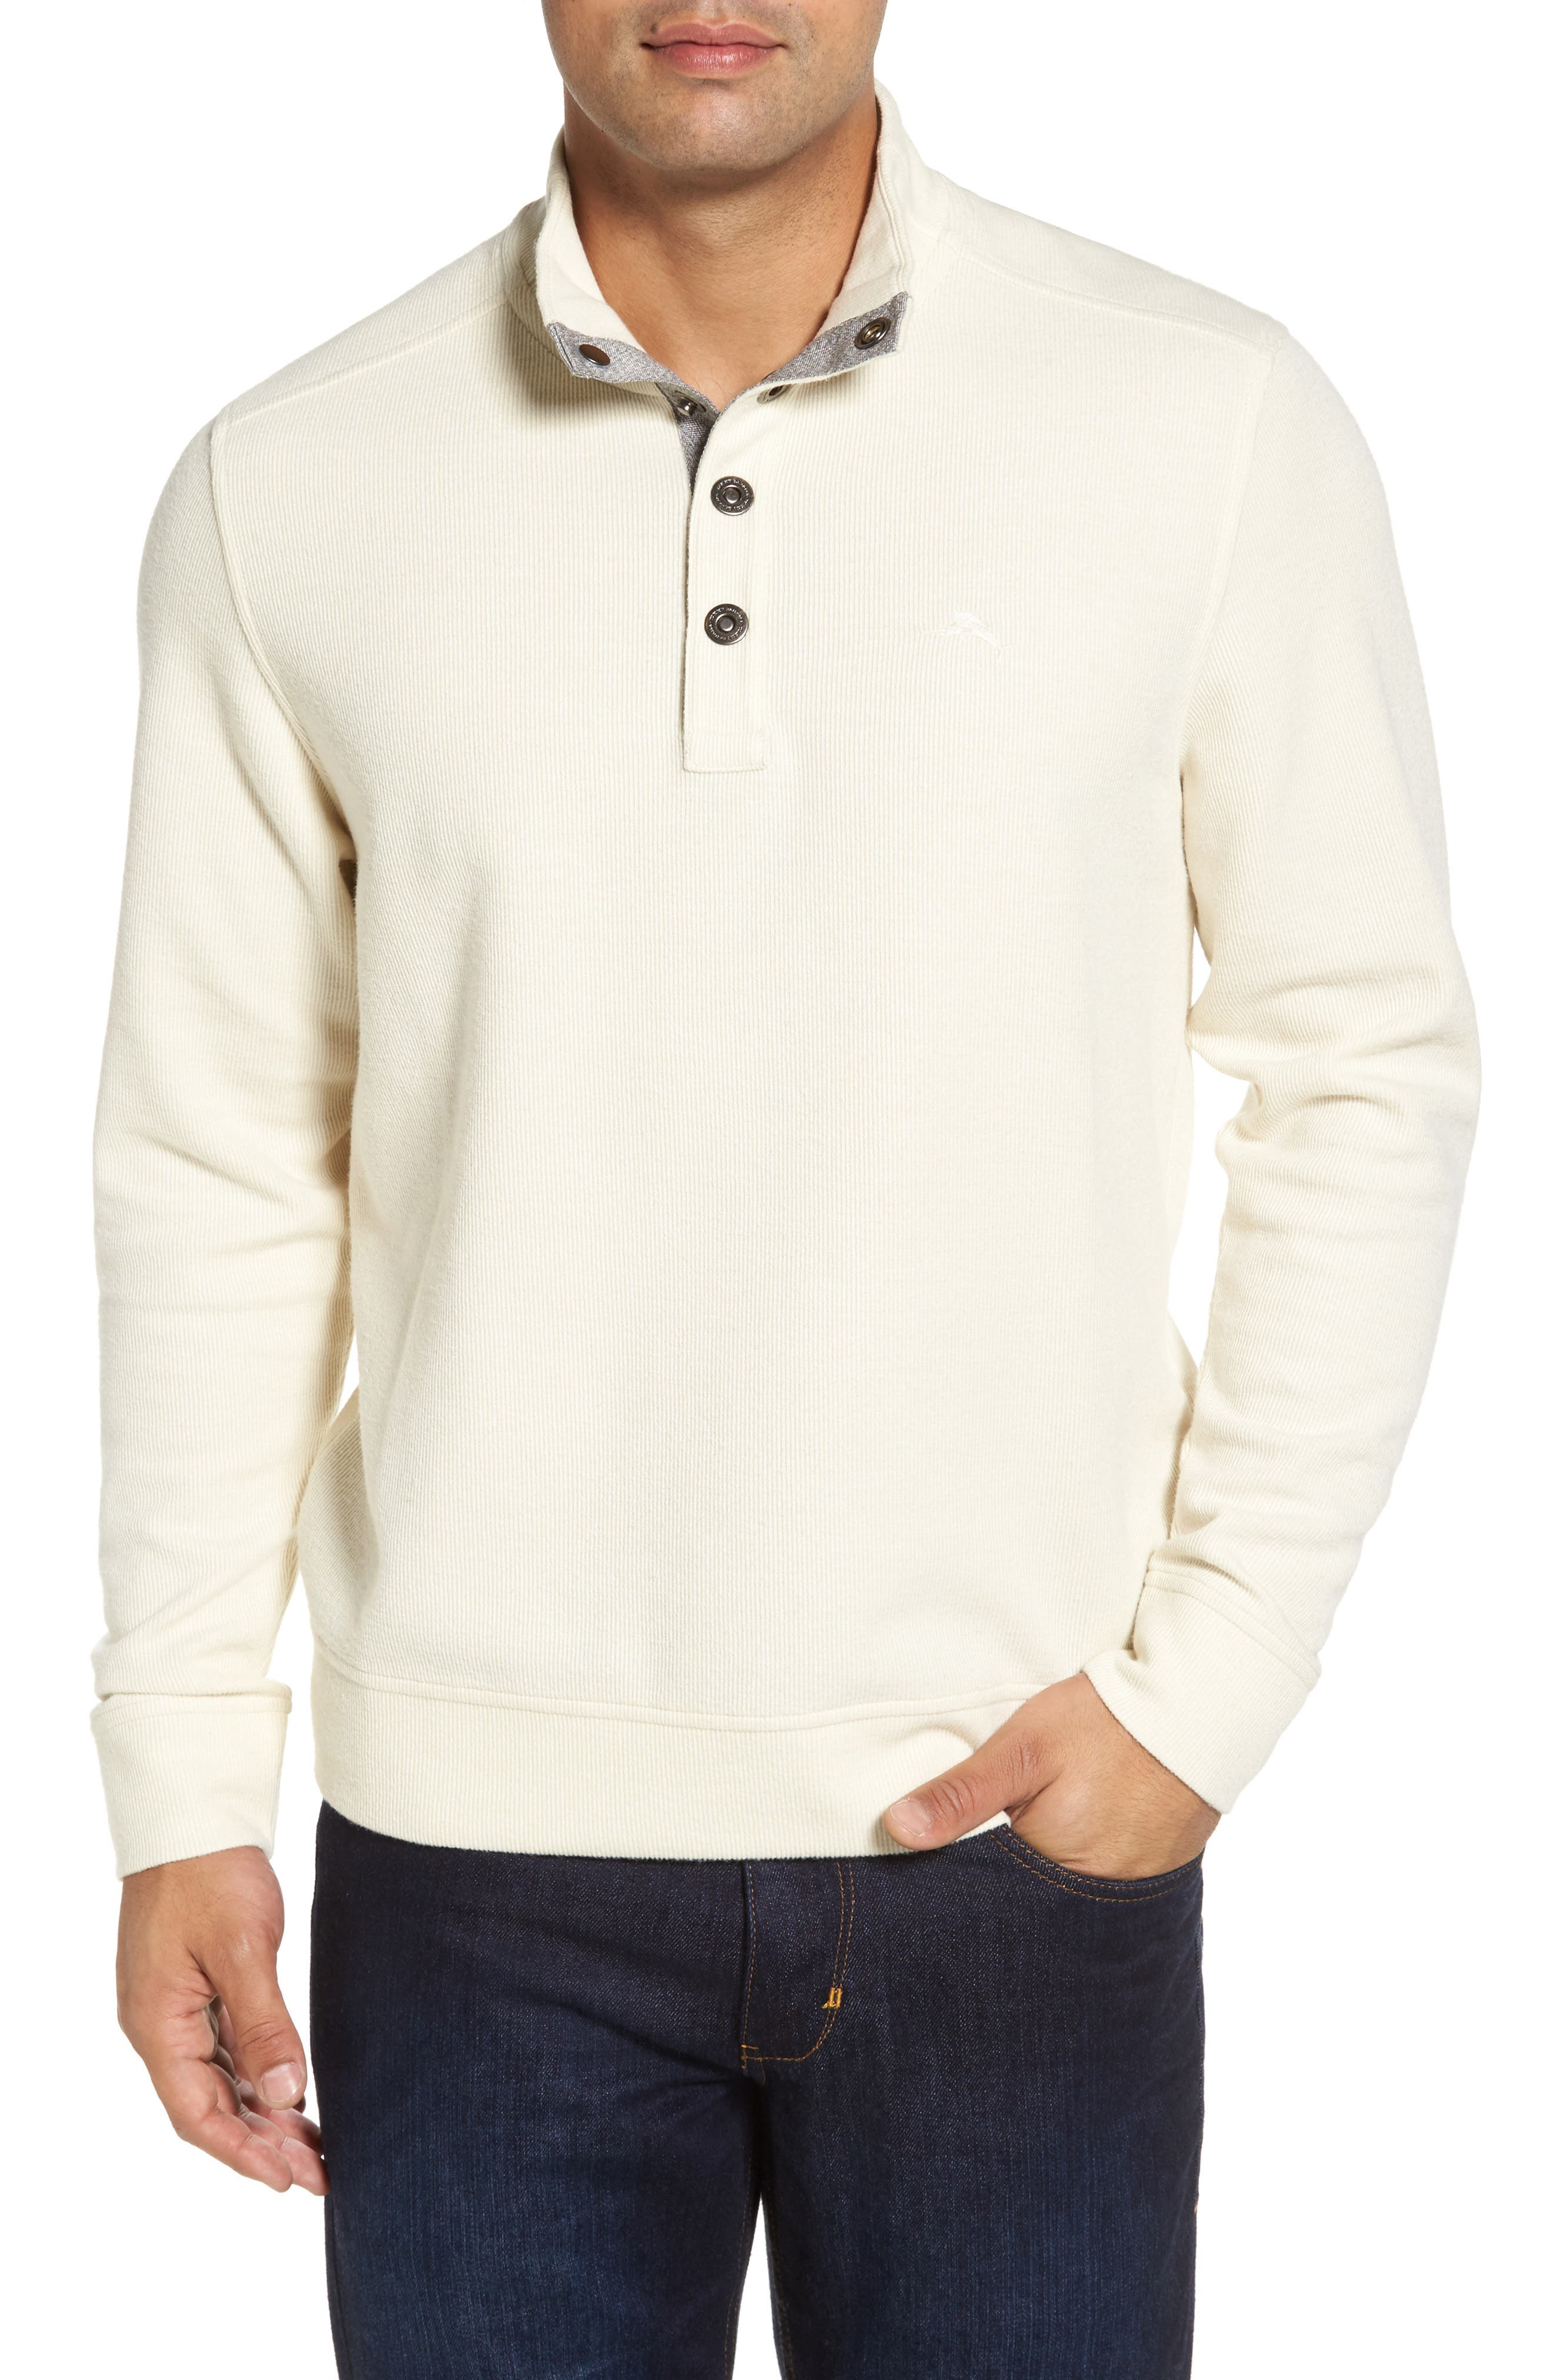 Cold Springs Snap Mock Neck Sweater,                             Main thumbnail 2, color,